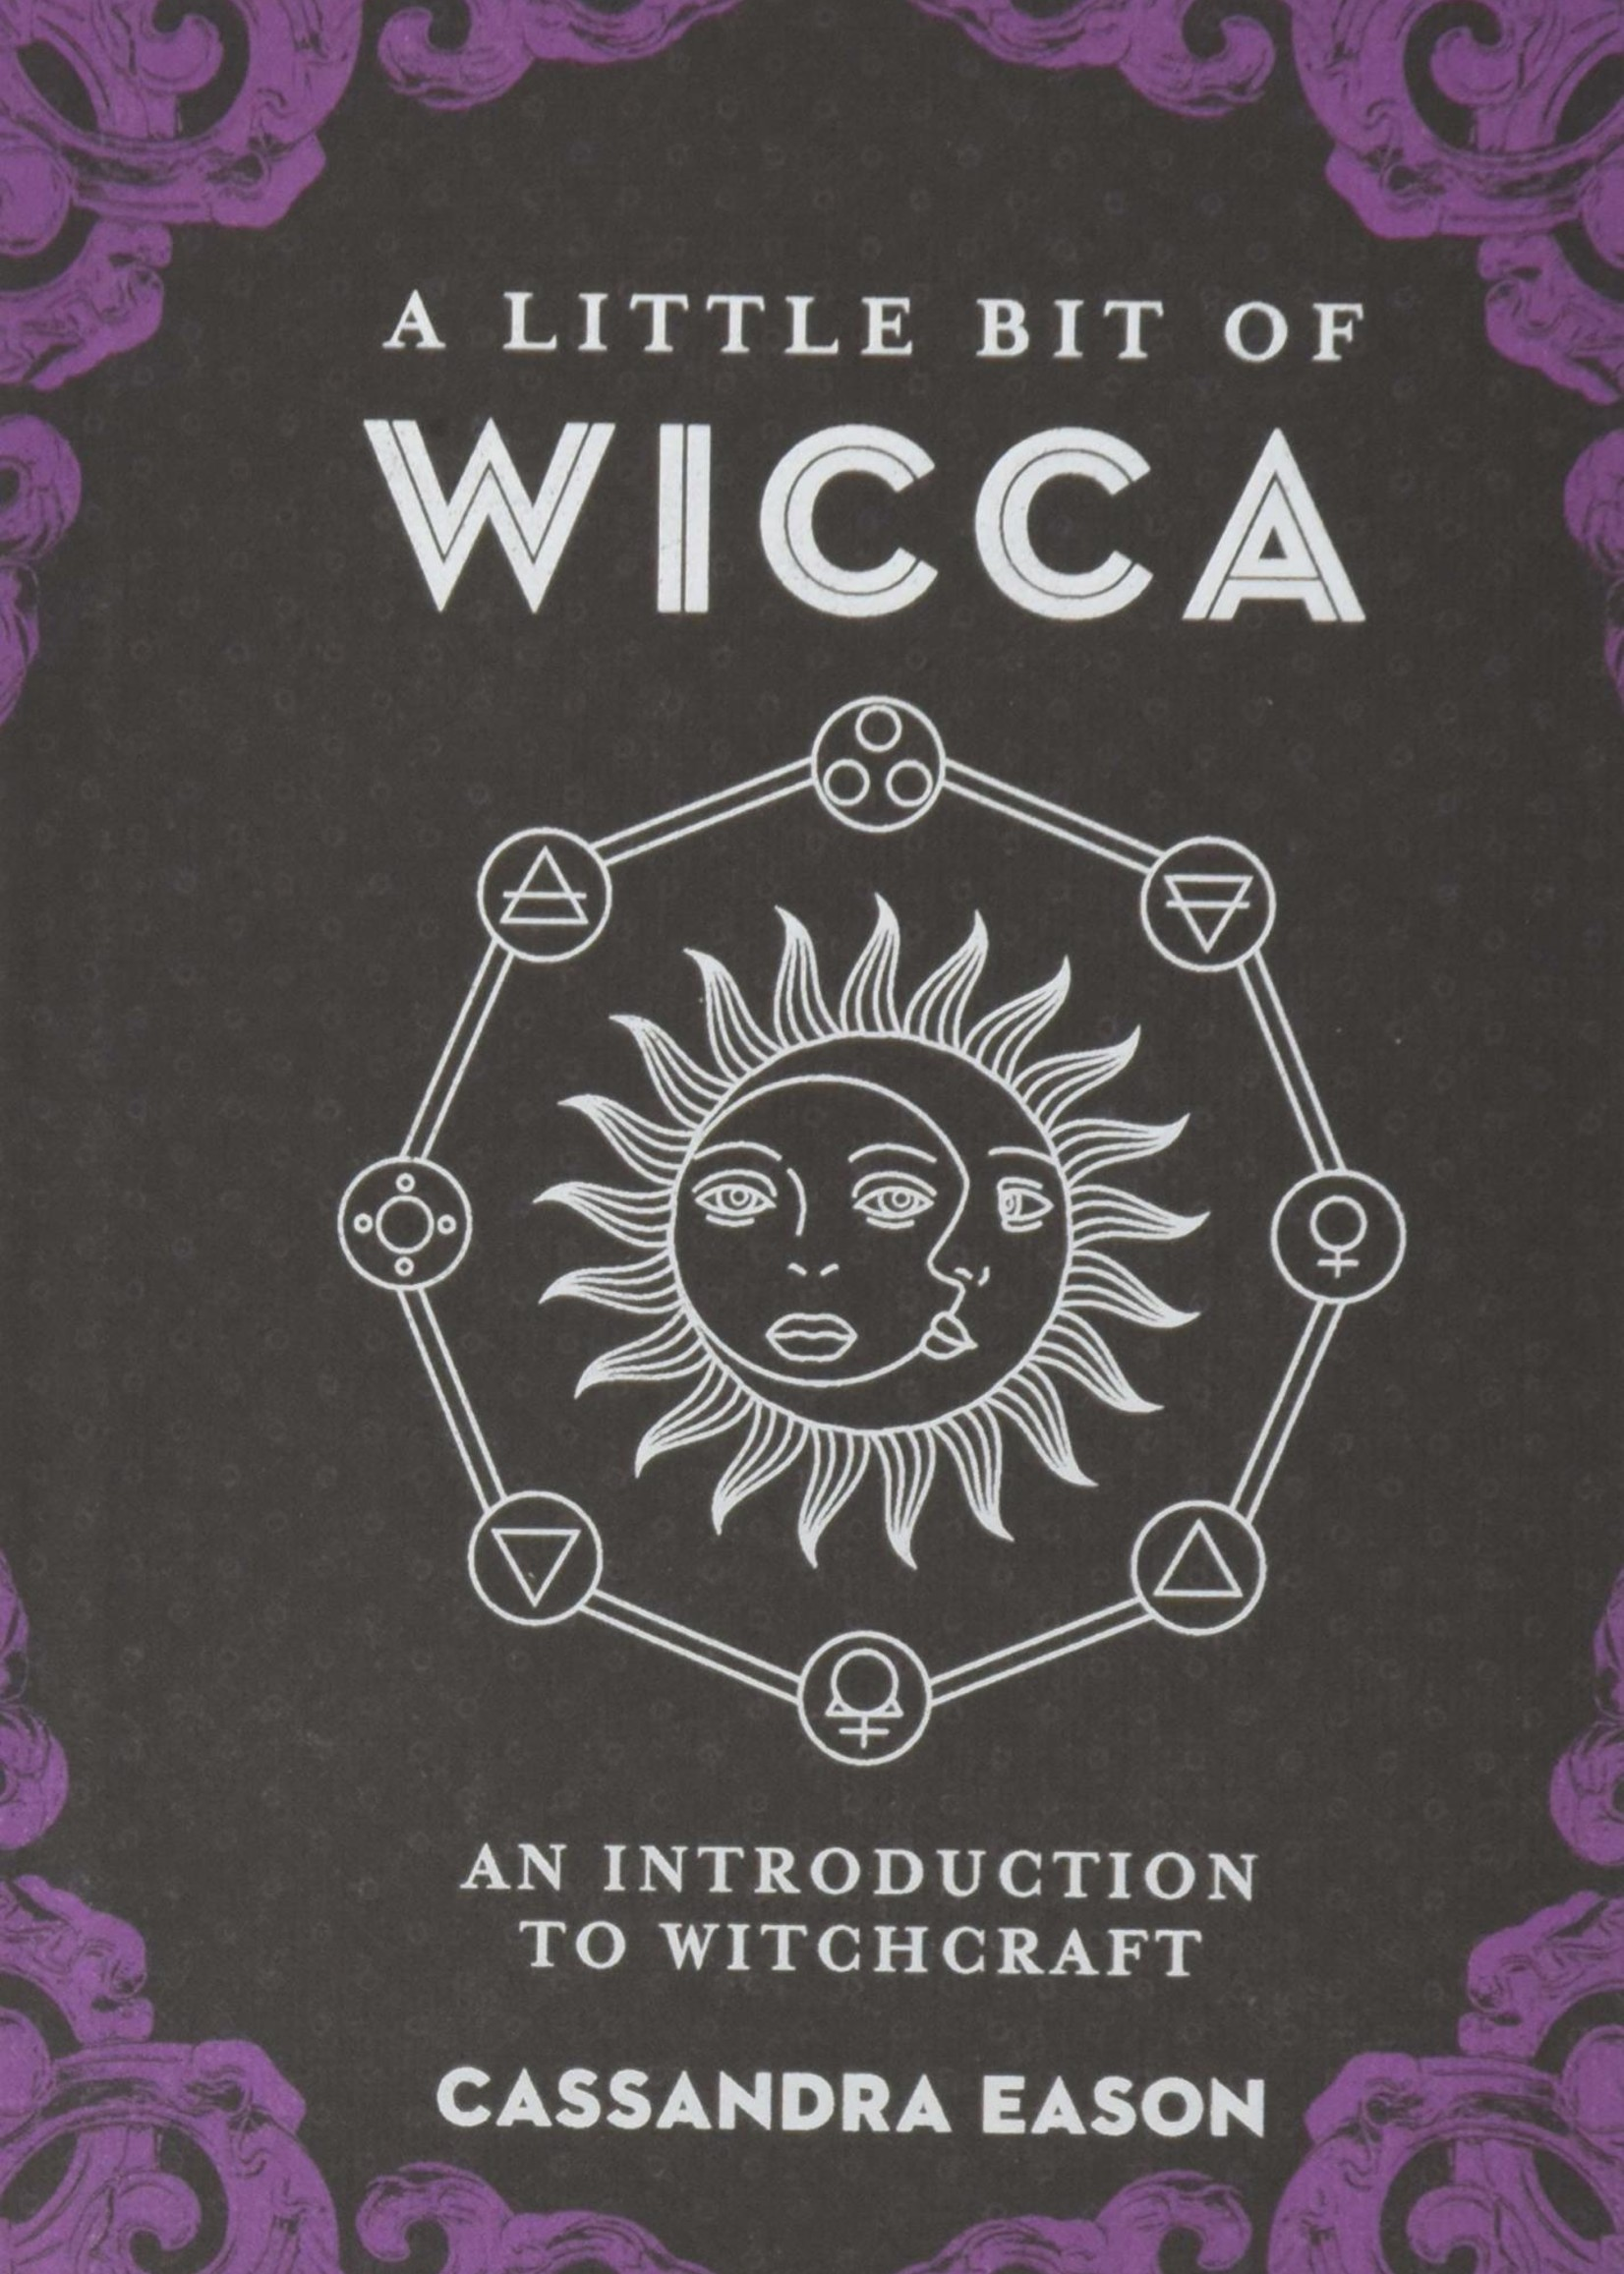 A Little Bit of Wicca - An Introduction to Witchcraft